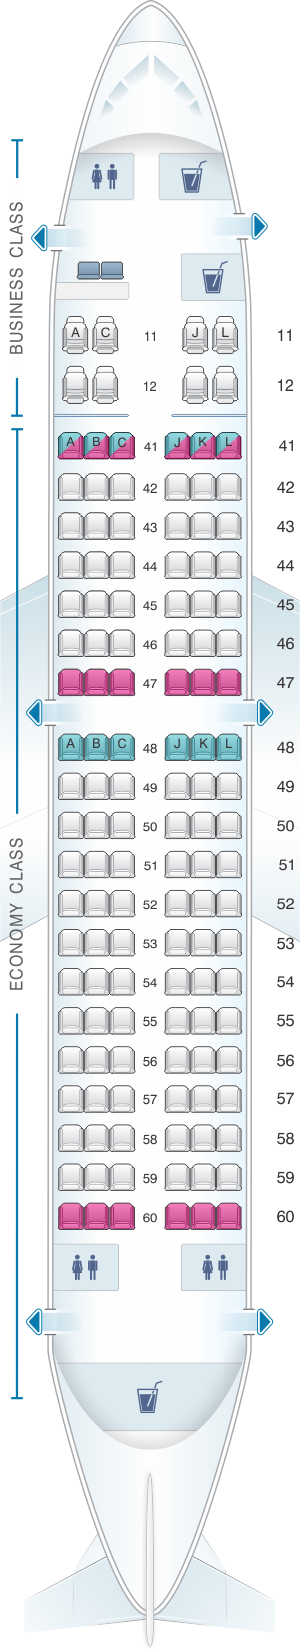 Seat map for Xiamen Airlines Boeing B737 700 128pax